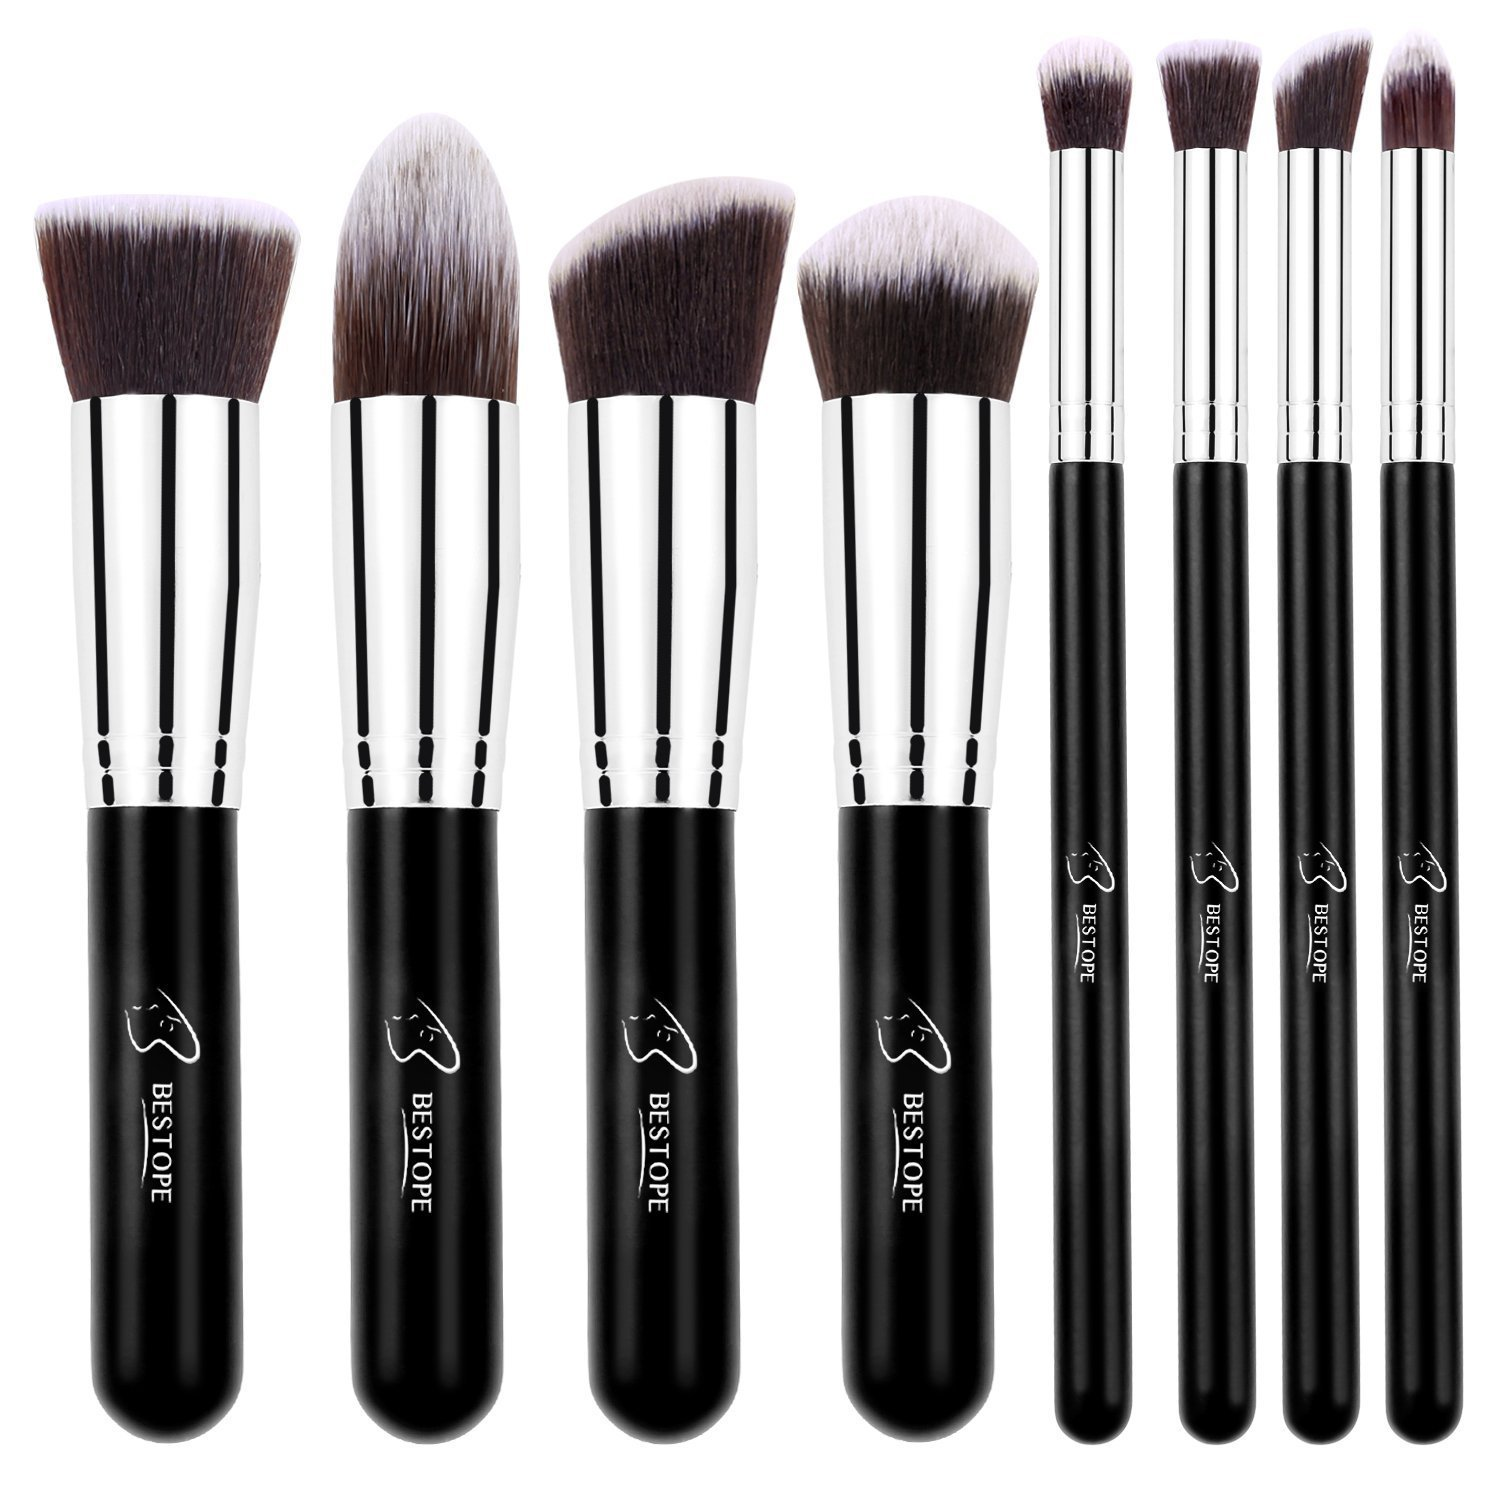 Bestope 8 Pieces Makeup Brush Set in Pakistan